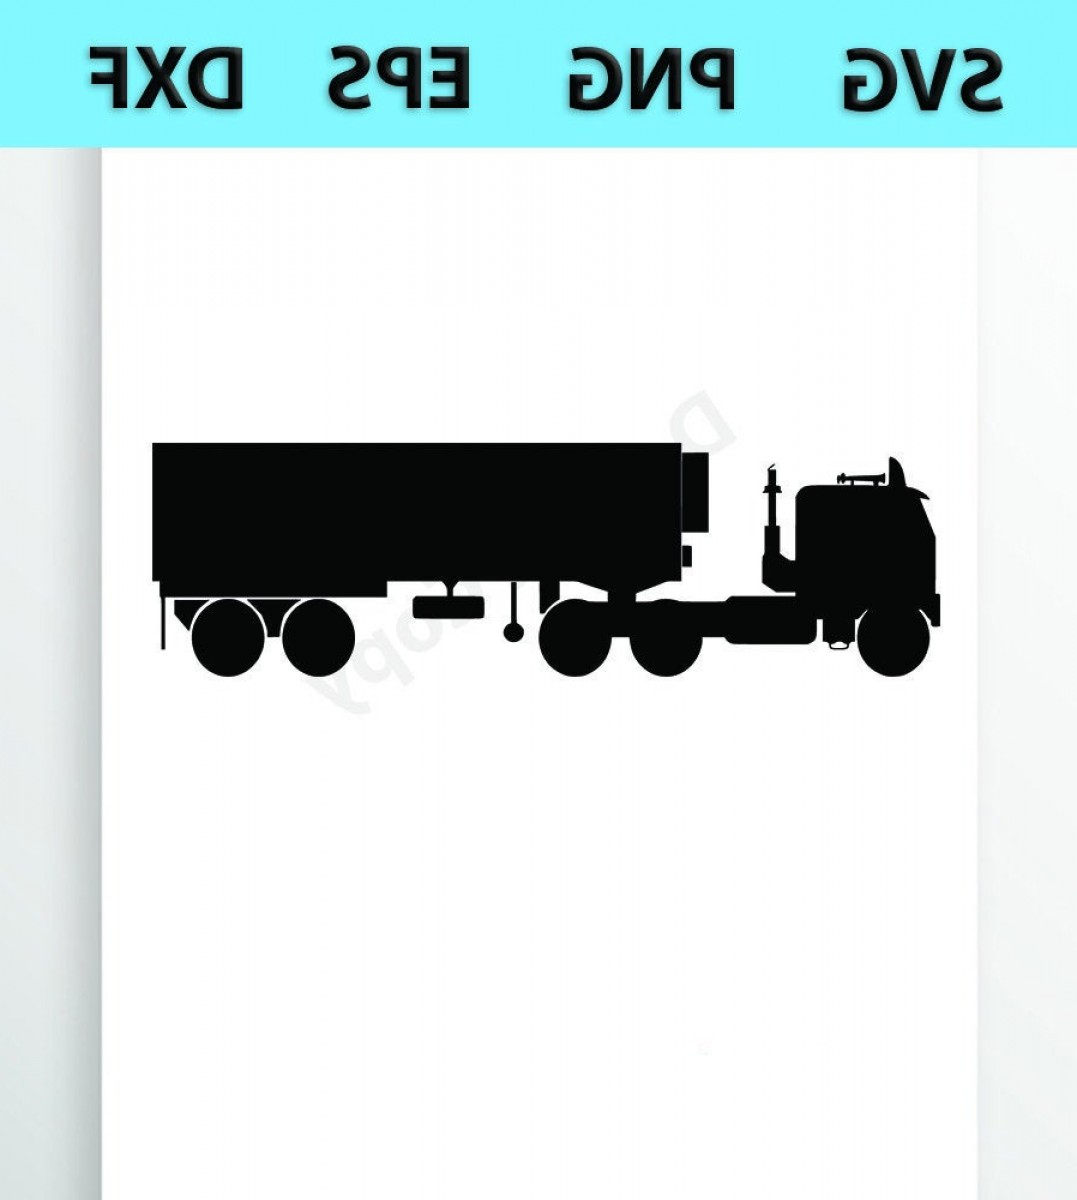 4 Wheeler Vector Art: Semi Truck Svg Files Vector Images